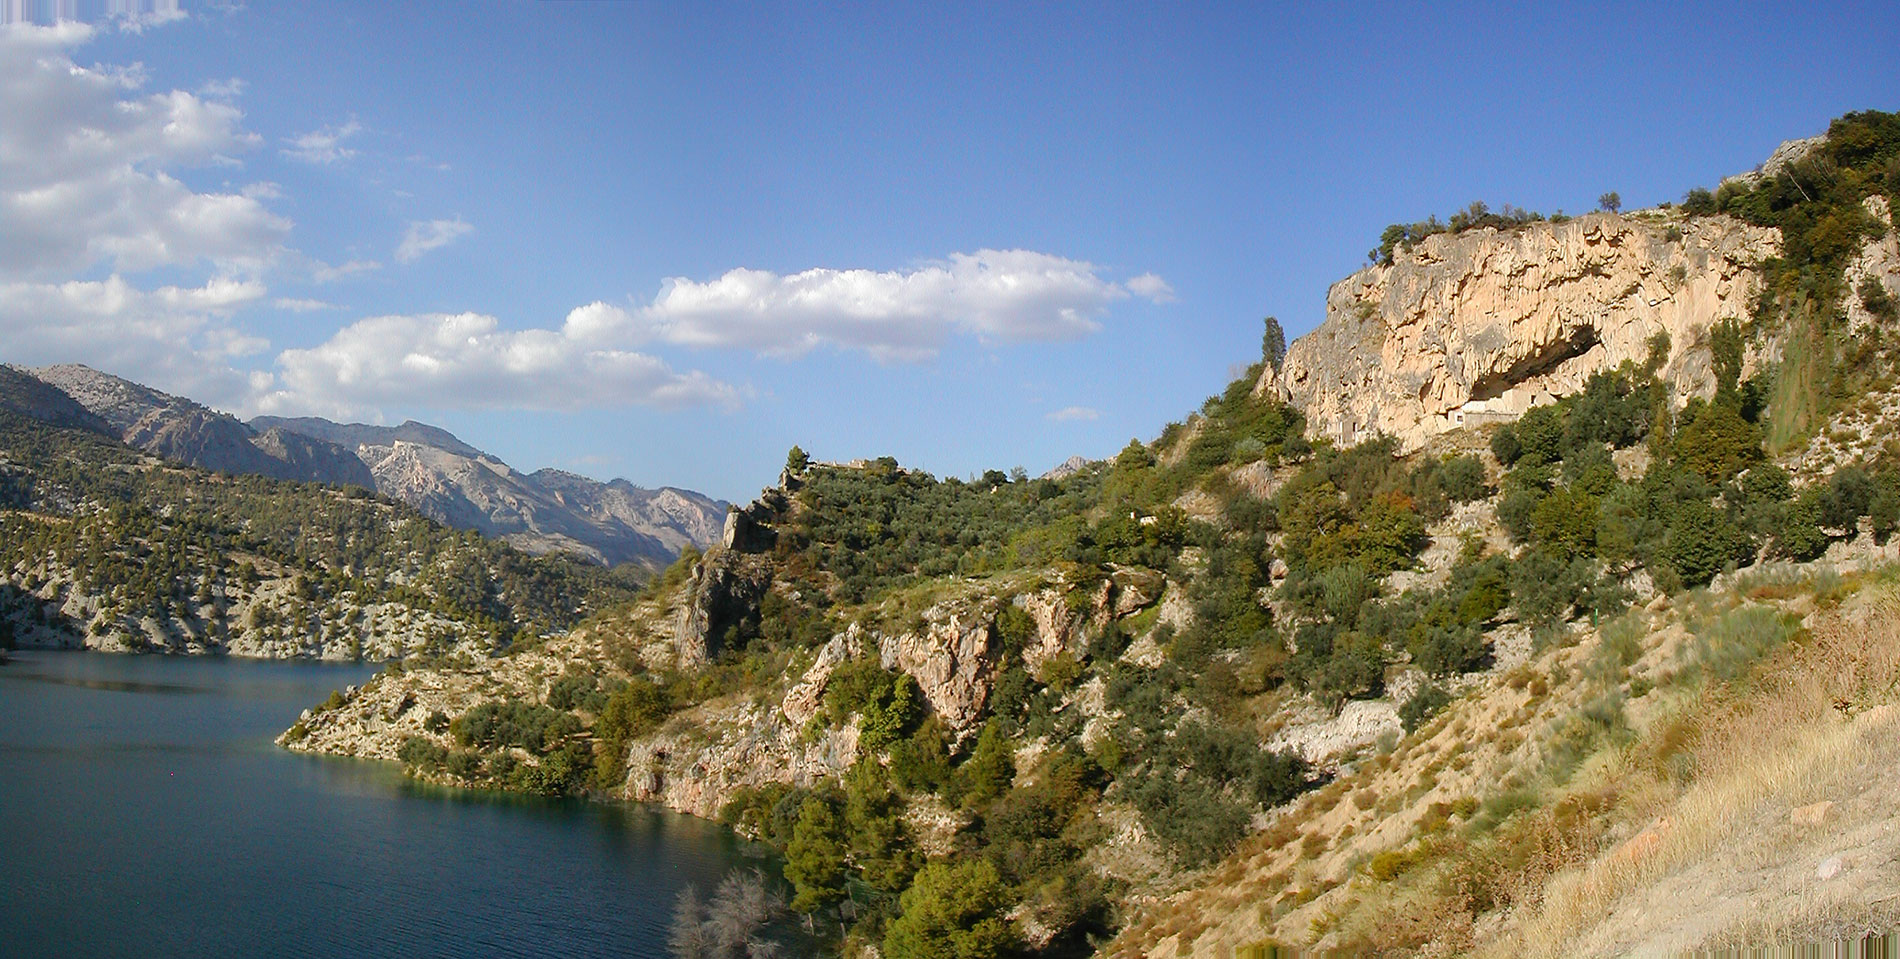 castril river, Castril lake, Castril Natural park,family activity holiday andalusia spain, Responsible travel